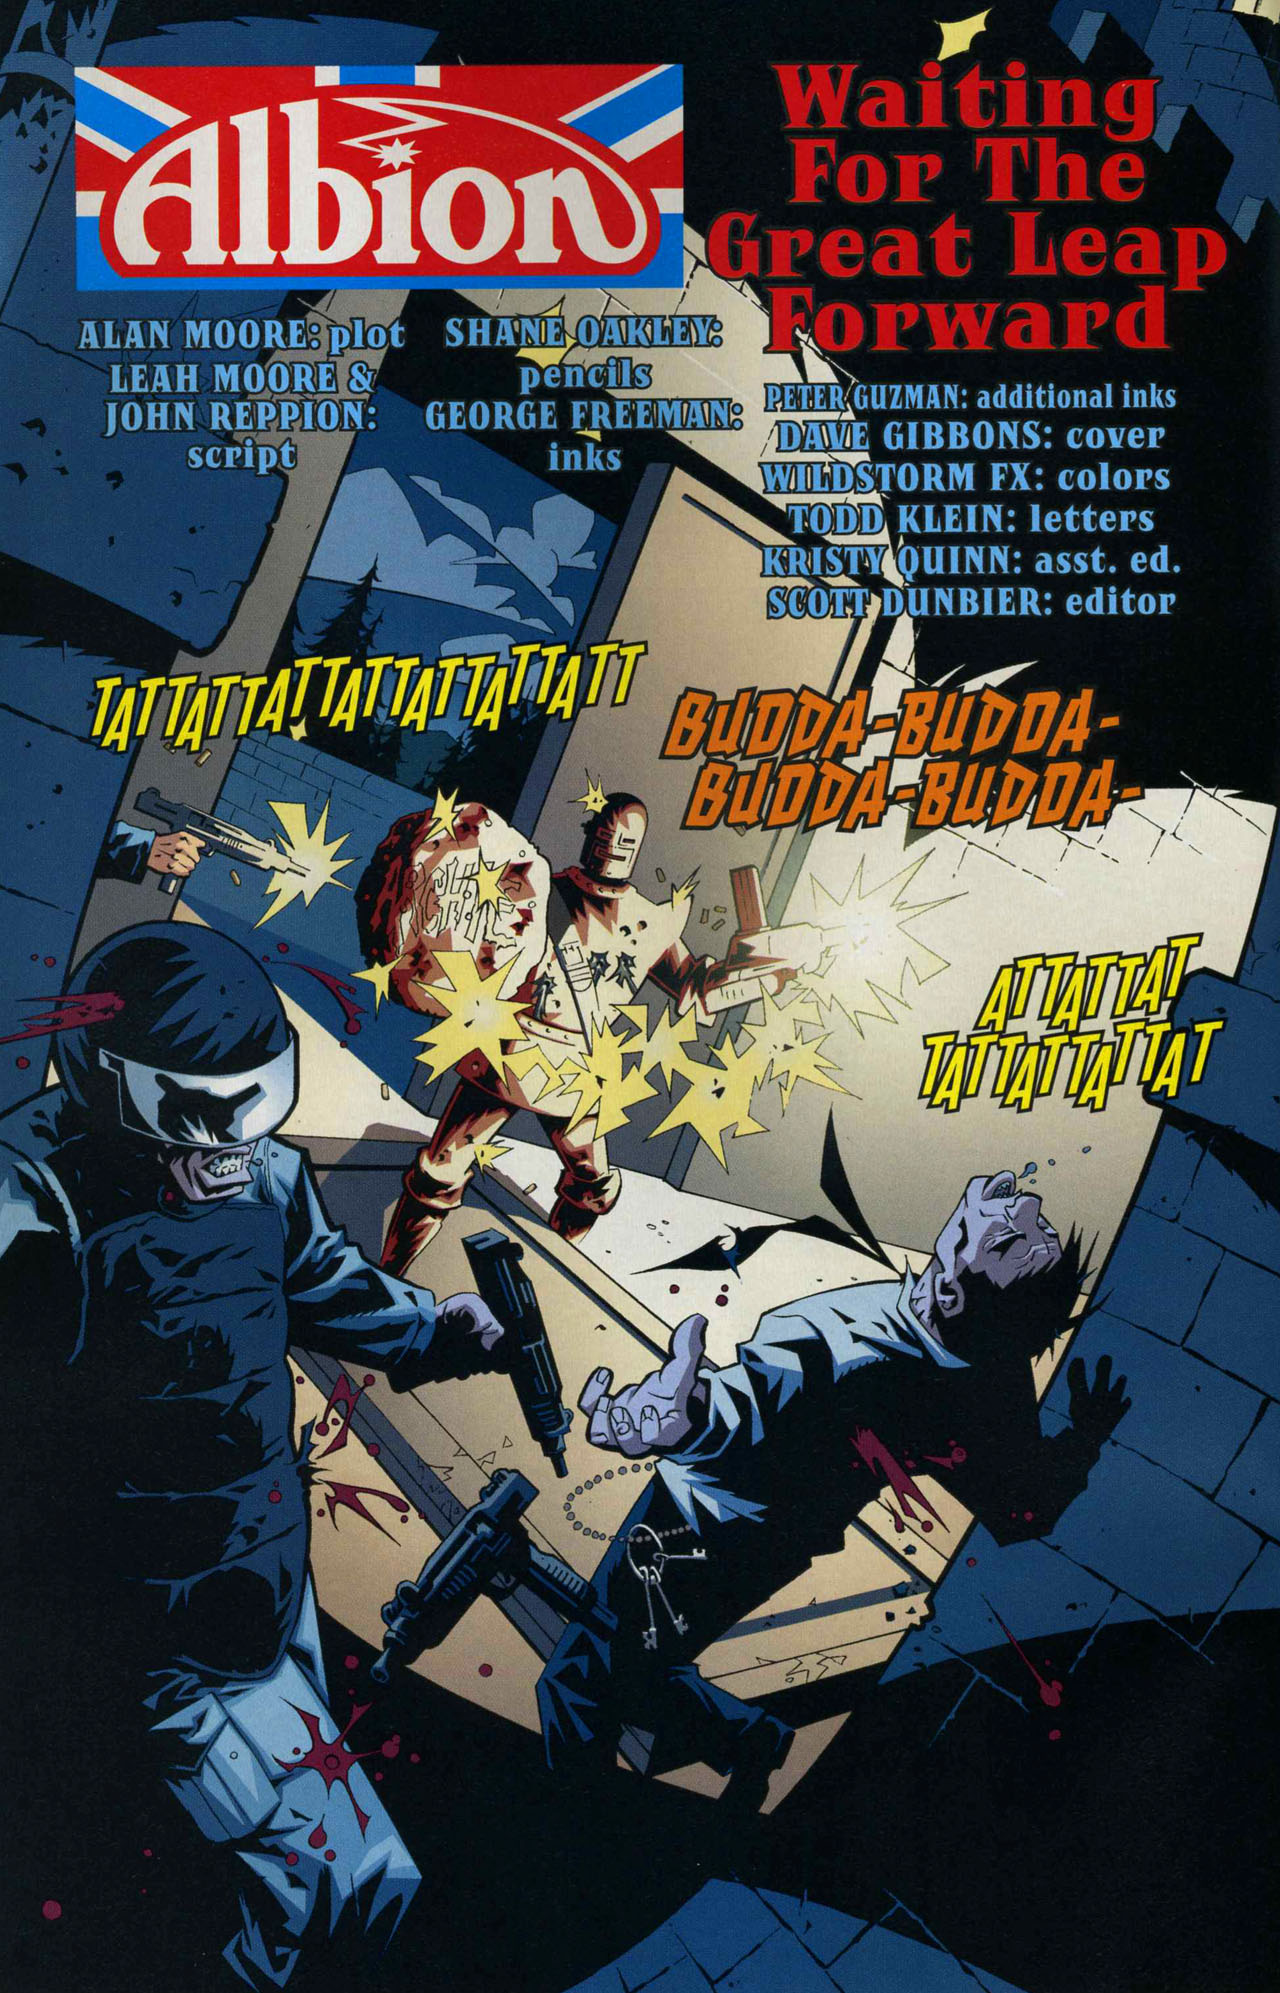 Read online Albion comic -  Issue #6 - 3